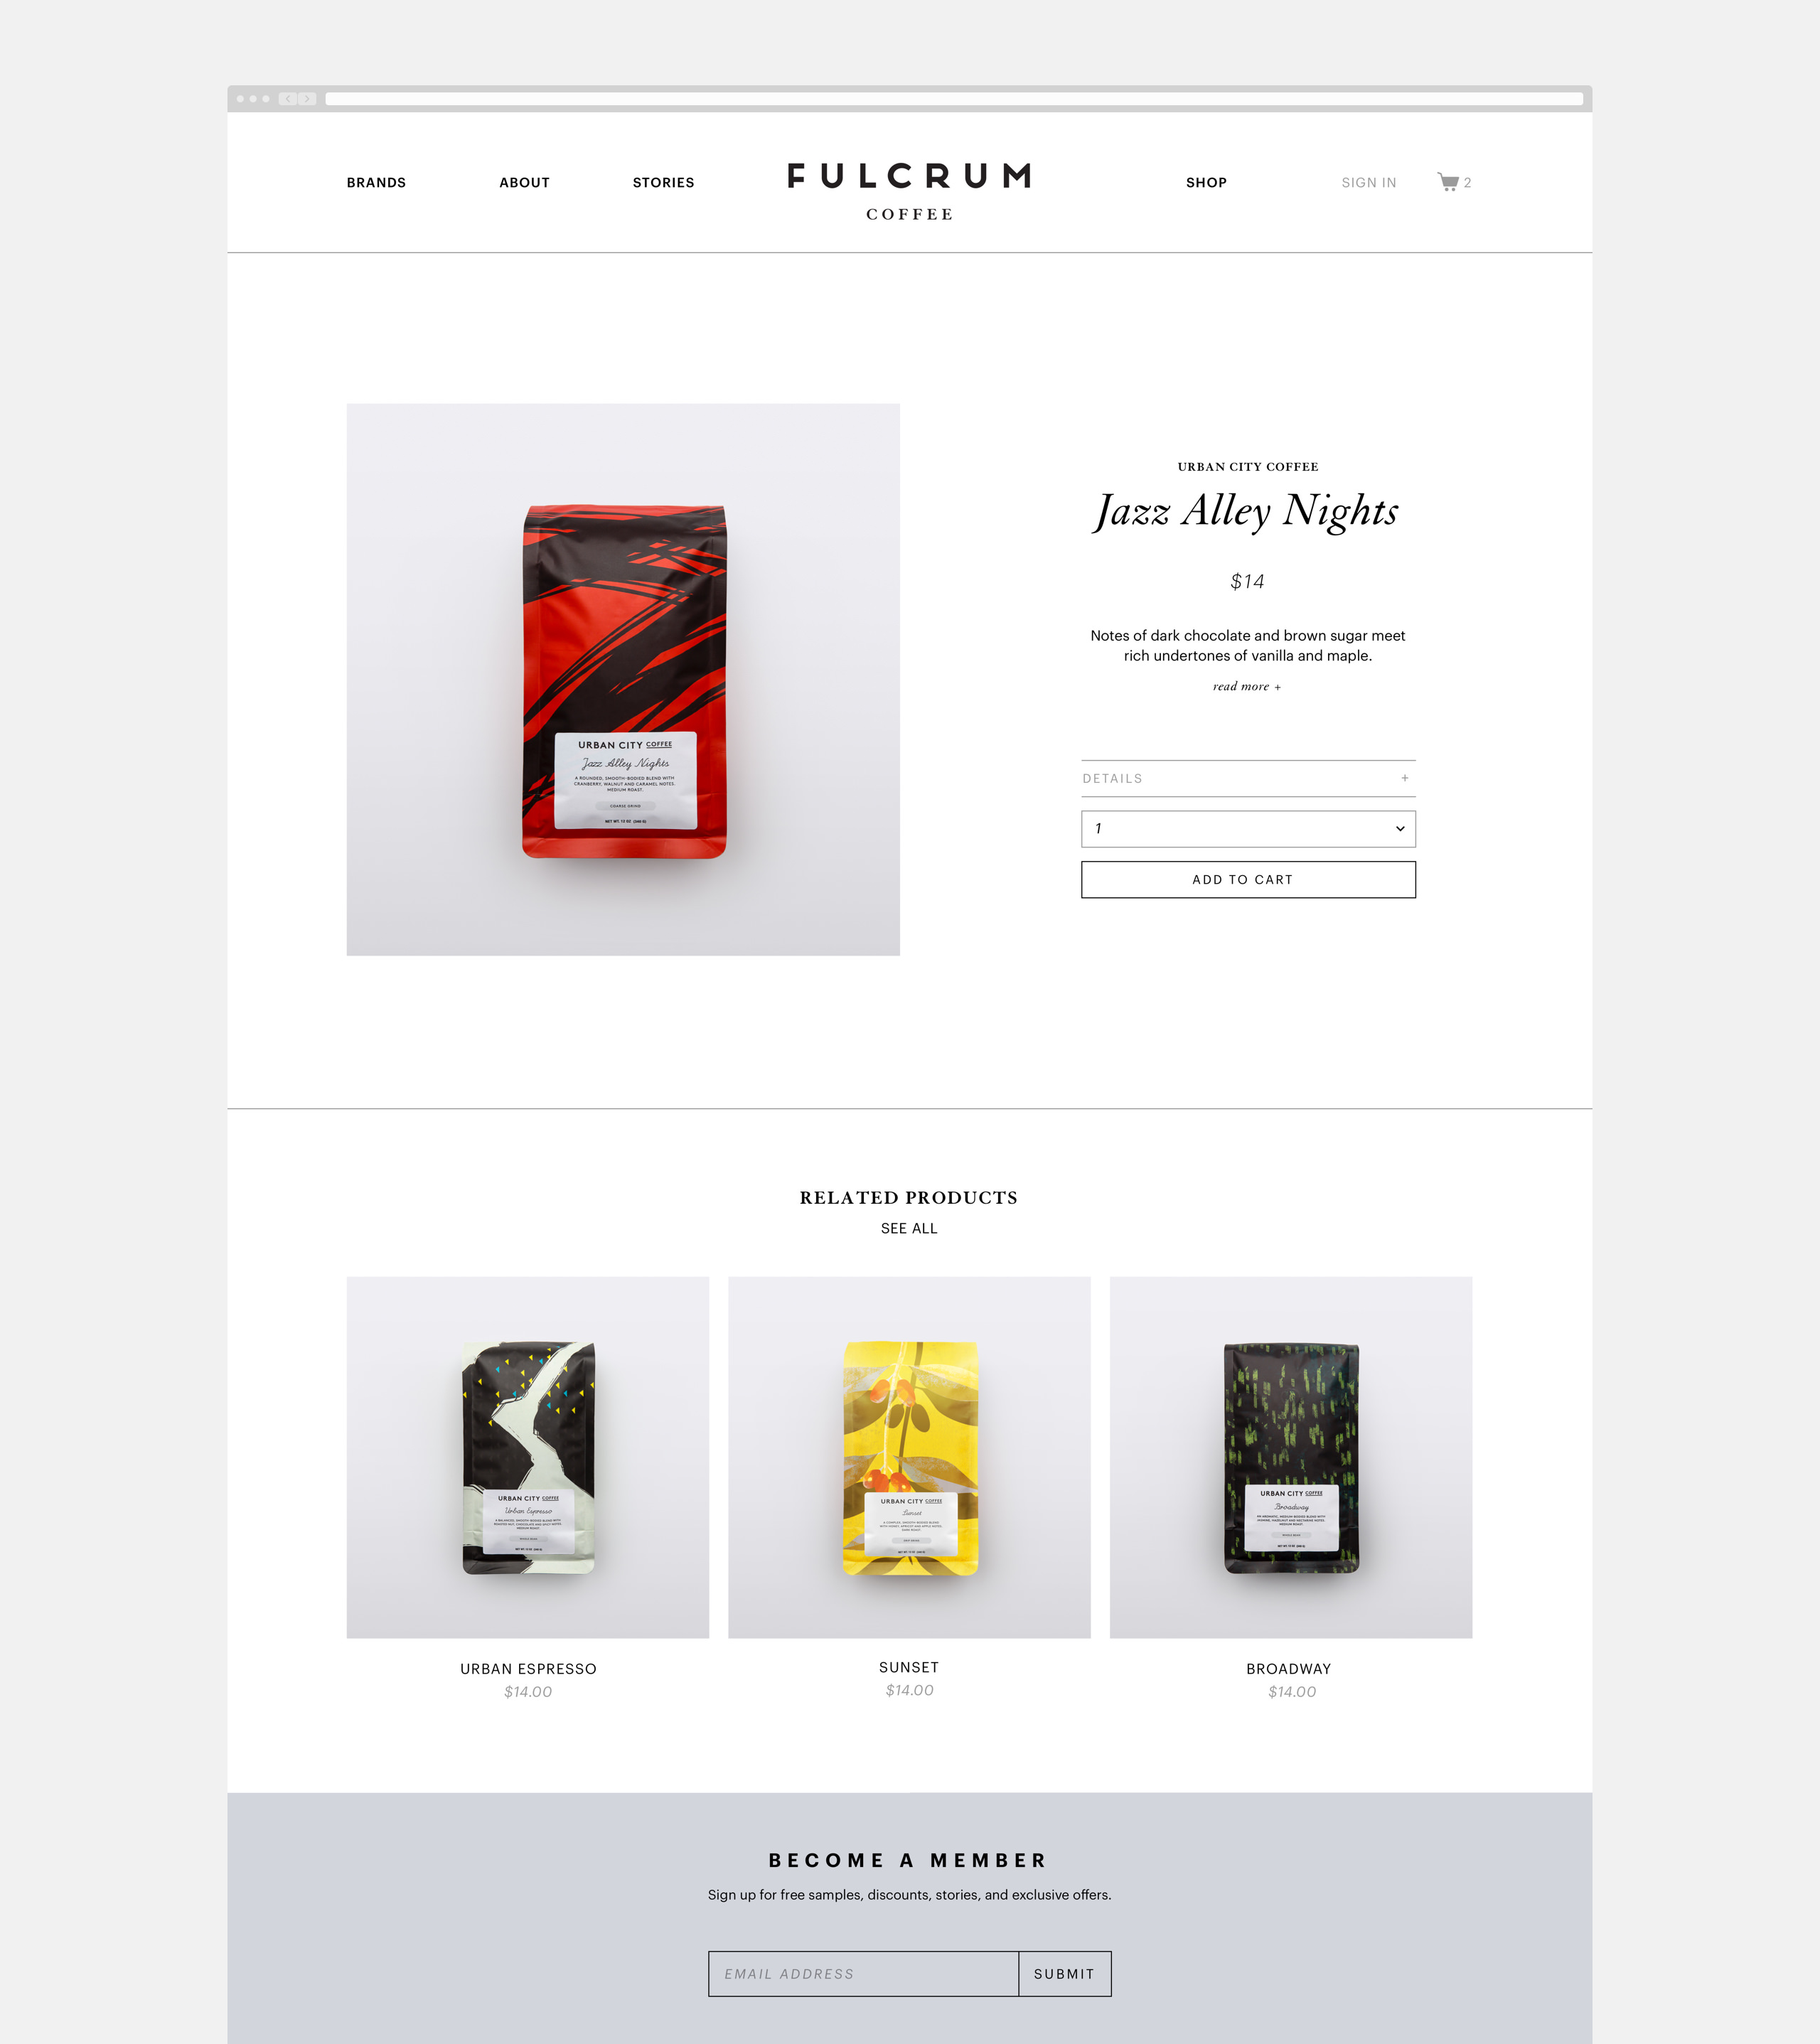 tolleson-case-study-fulcrum-coffee-interactive-11